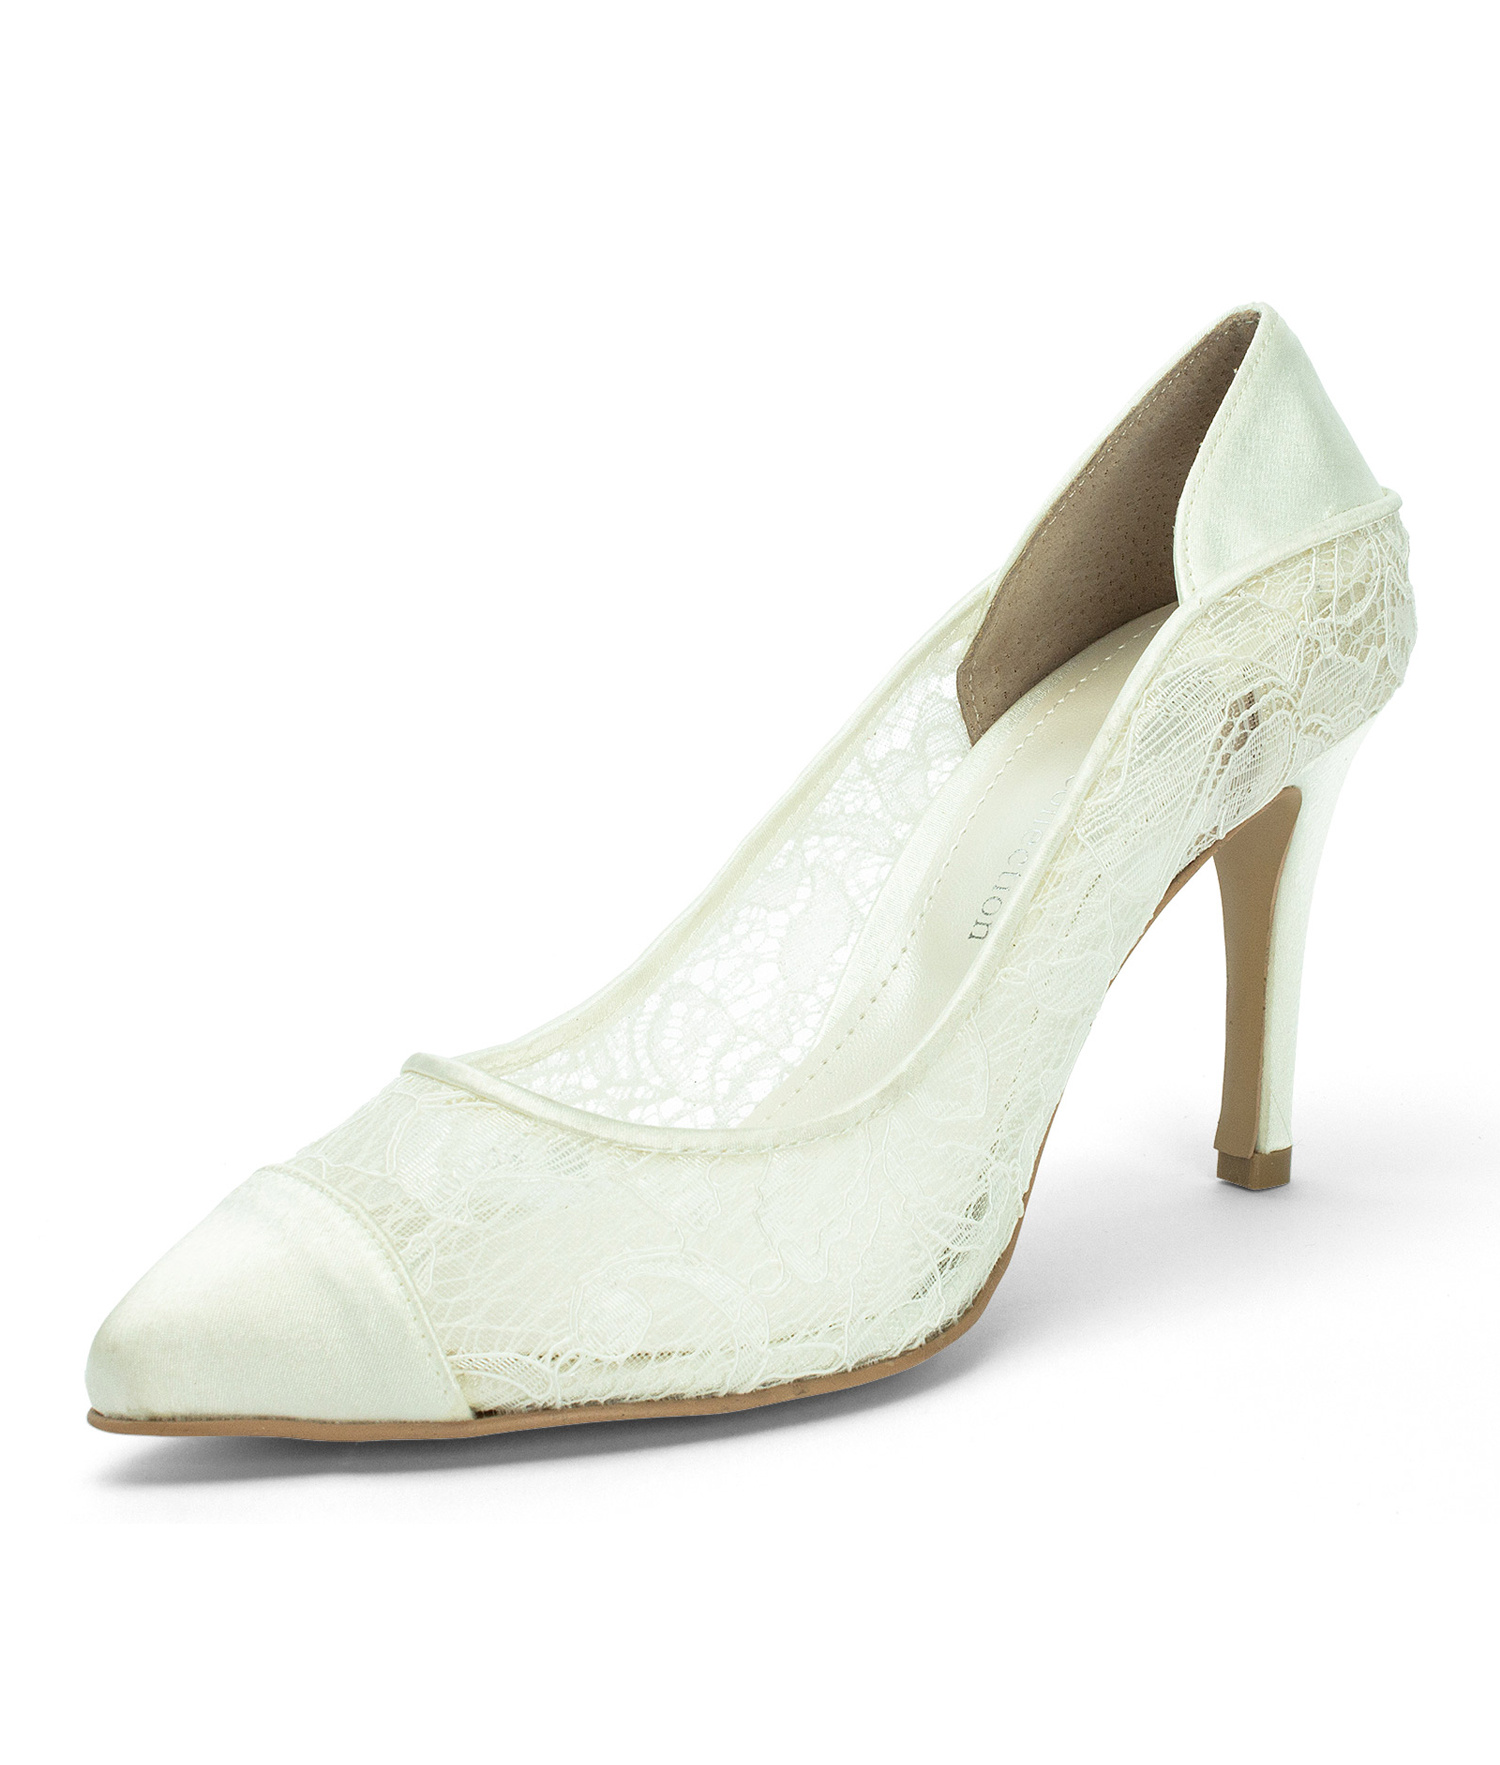 Ivory Lace Wedding Heels with Satin Bow